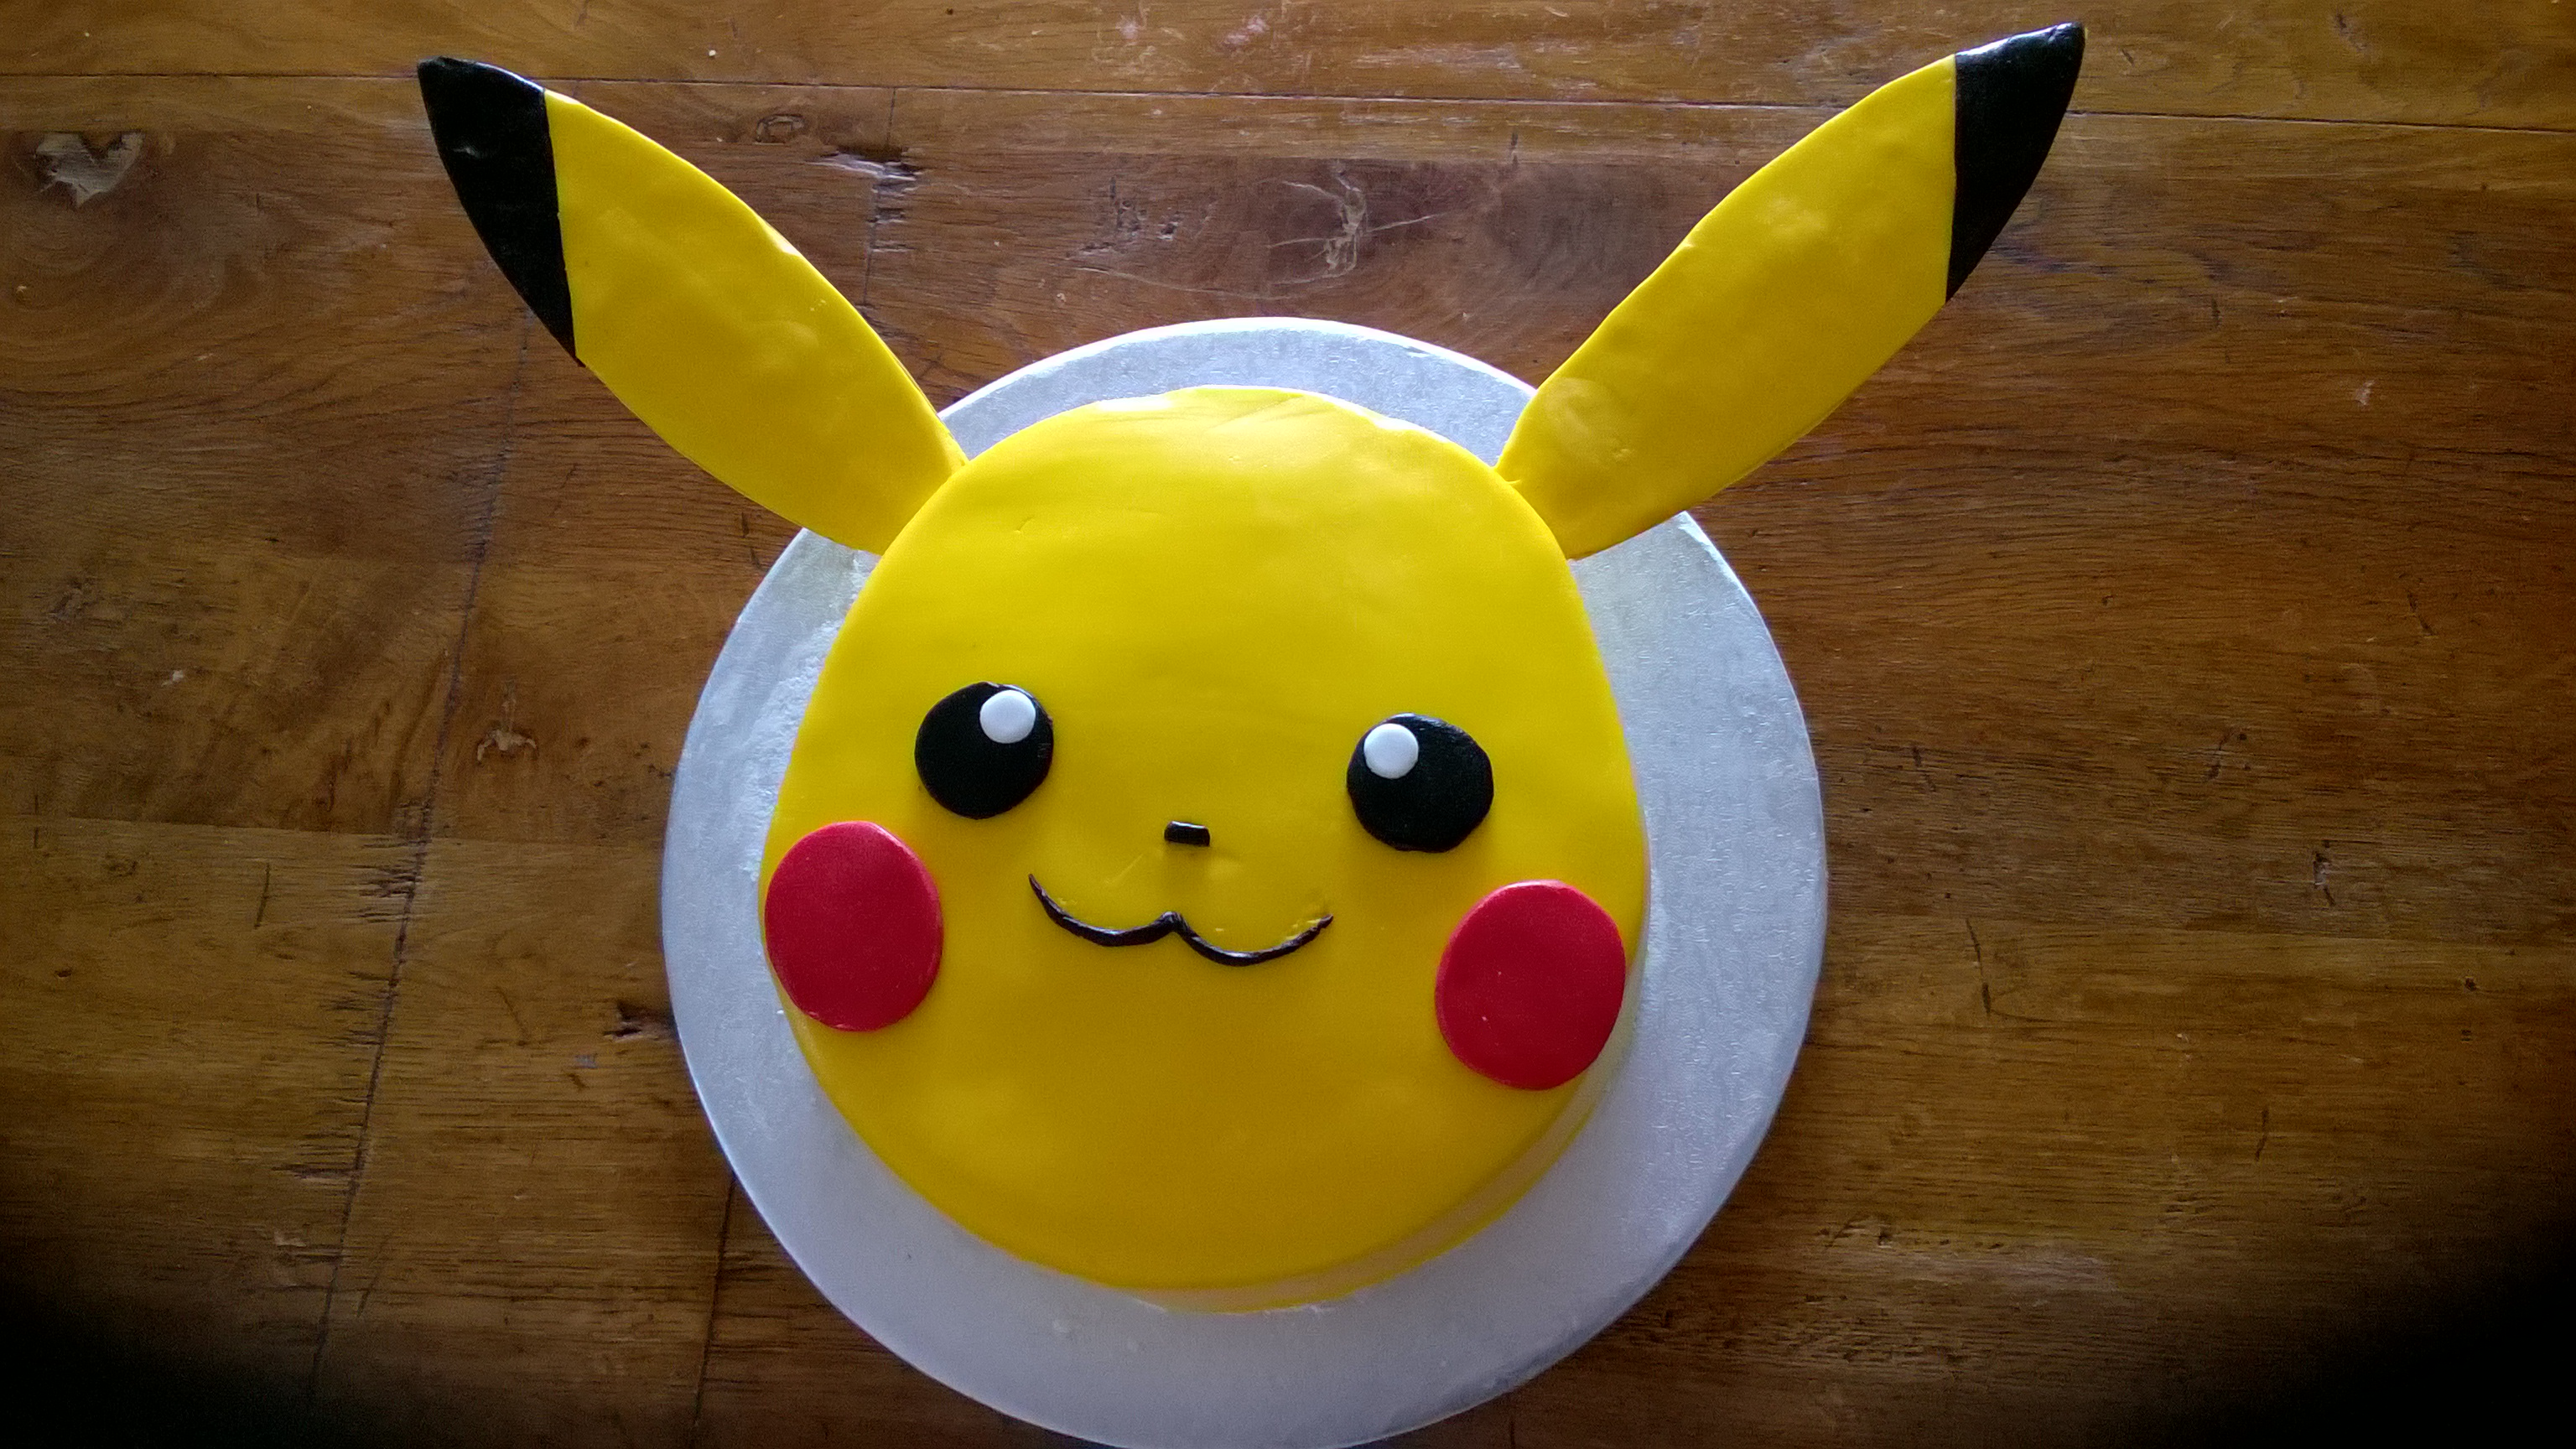 All right, it's not the best interpretation of Pikachu, but there are some worse ones out there!